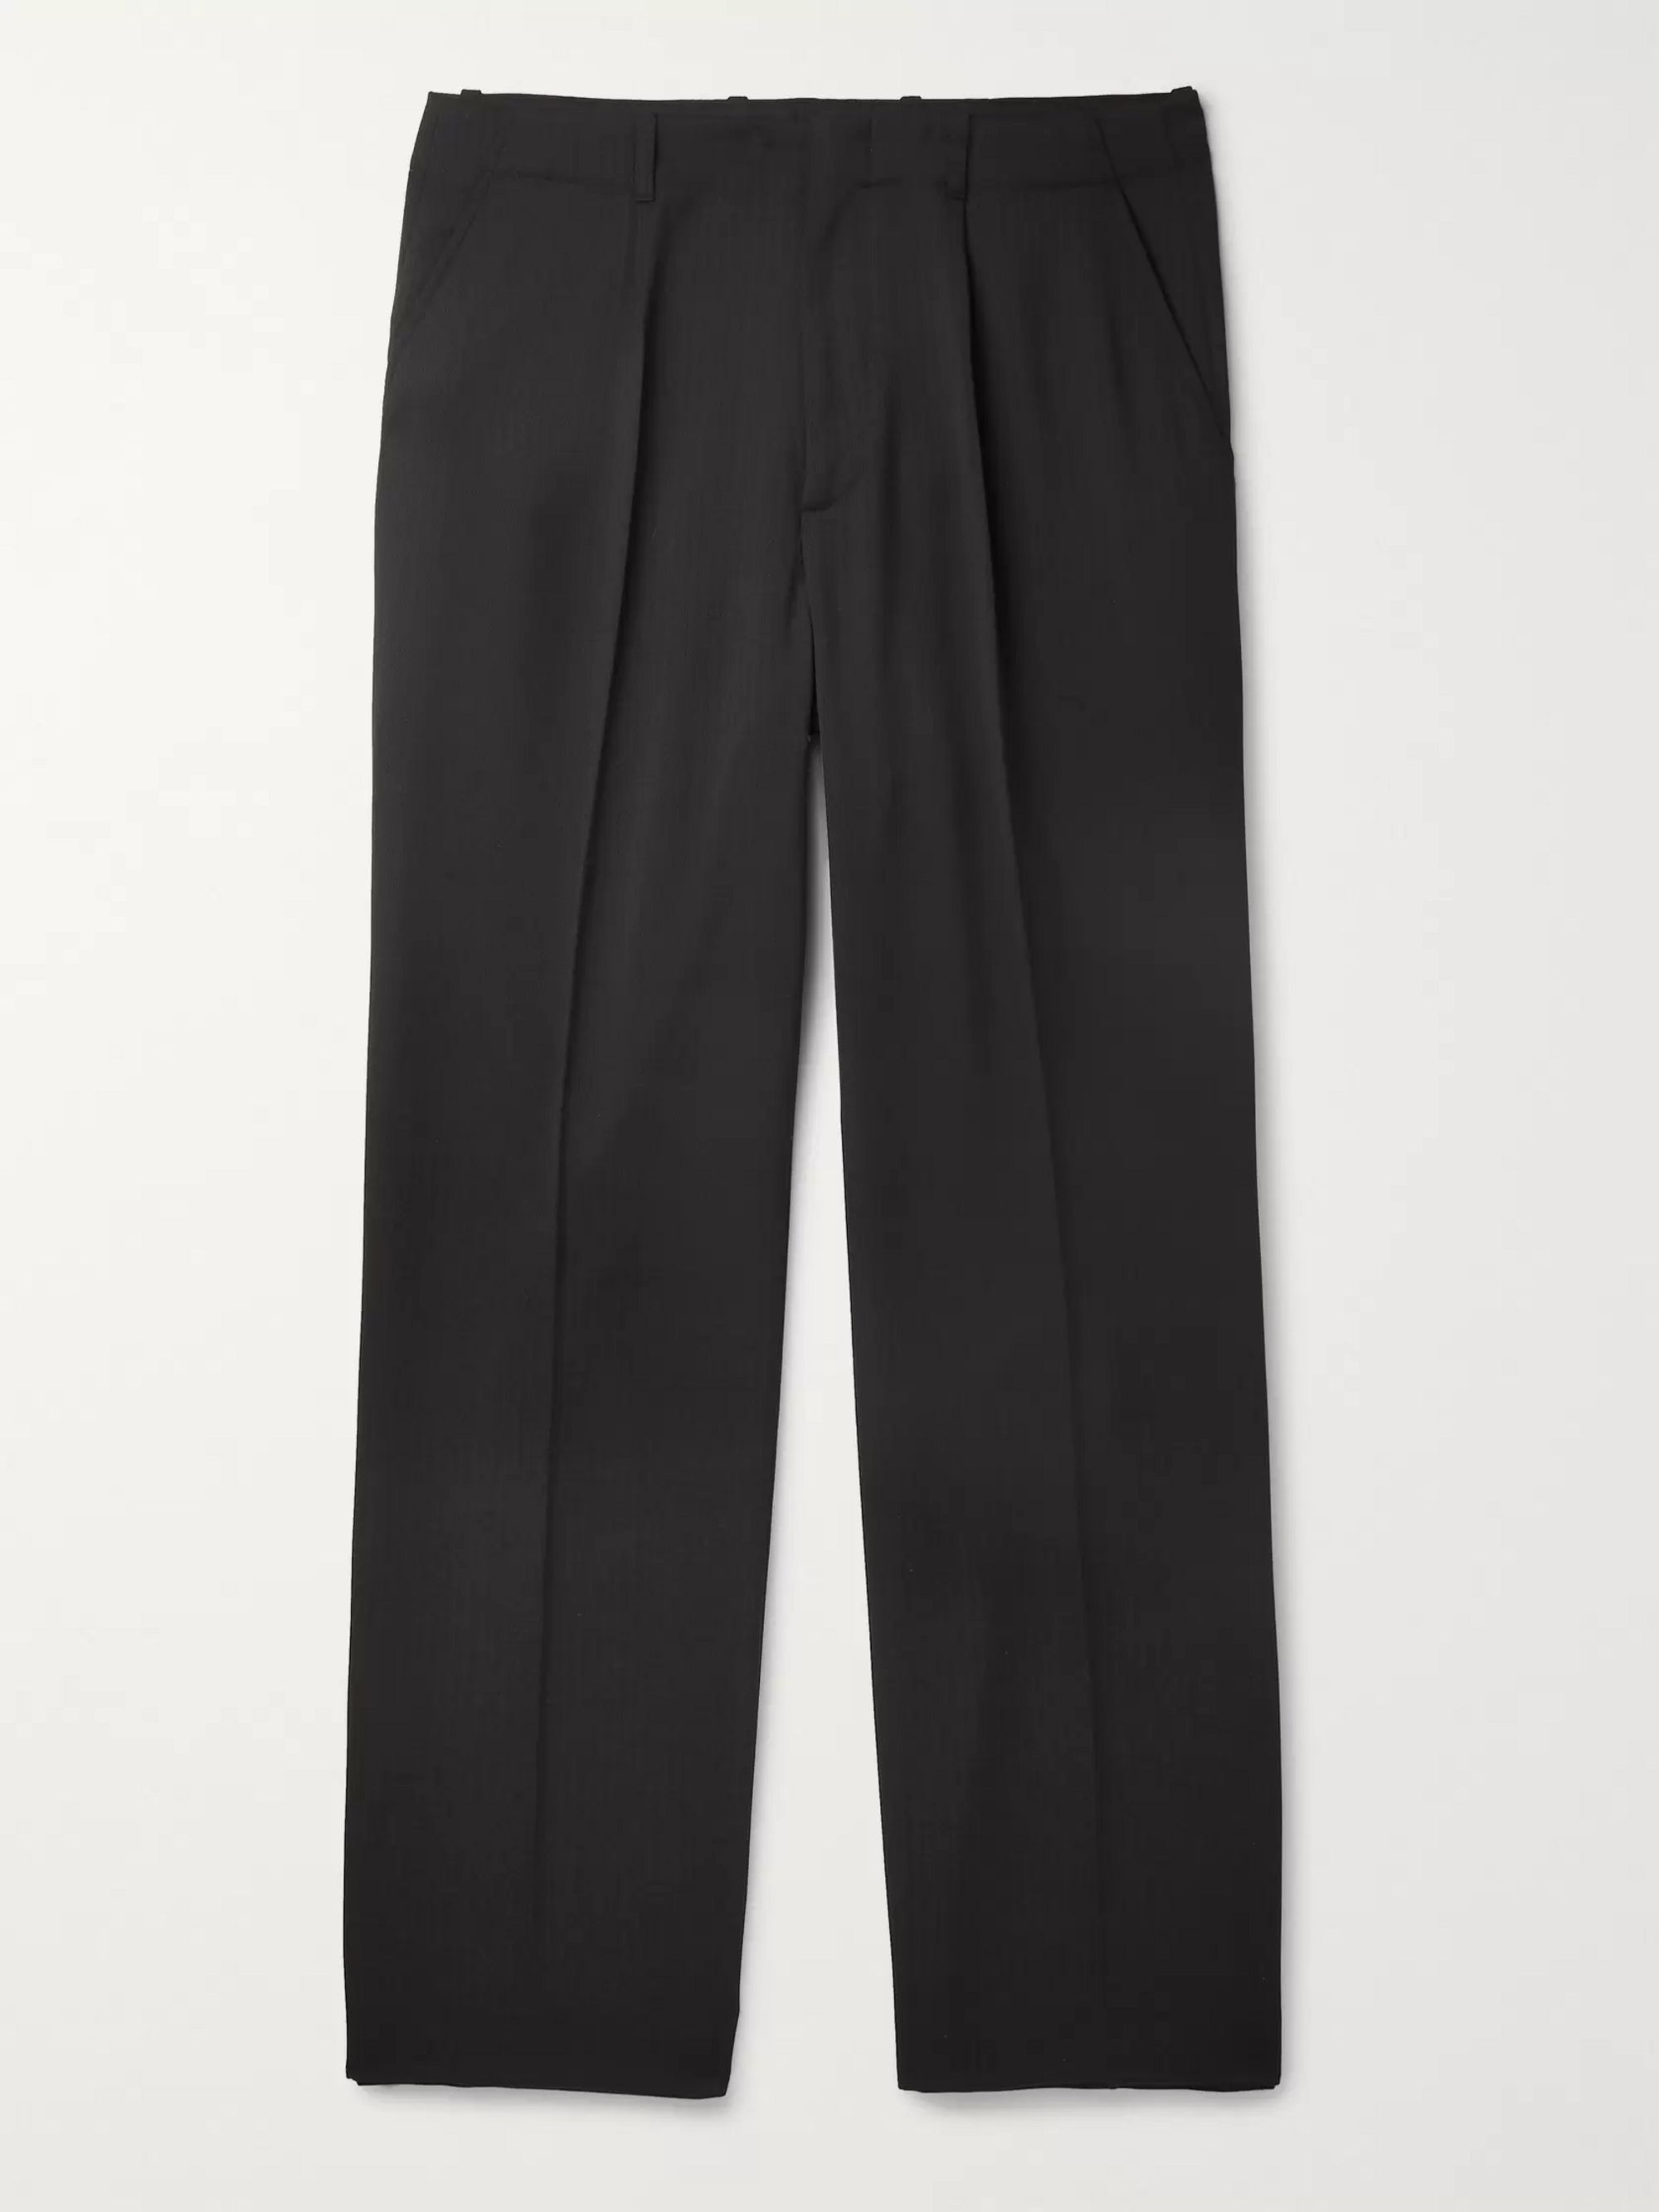 Our Legacy Black Borrowed Wide-Leg Herringbone Woven Trousers